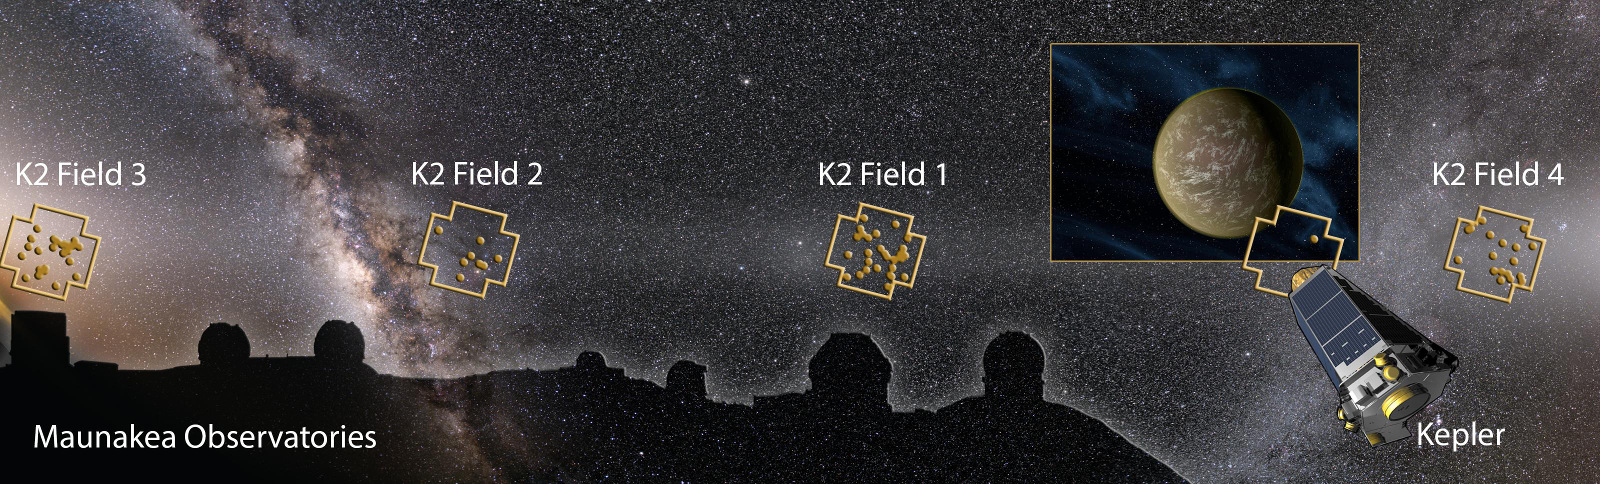 Image montage showing the Maunakea Observatories, Kepler Space Telescope, and night sky with K2 Fields and discovered planetary systems (dots) overlaid. An international team of scientists discovered more than 100 planets based on images from Kepler operating in the 'K2 Mission'. The planet image on the right is an artist's impression of a representative planet. Image credit: Karen Teramura (UHIfA) based on night sky image of the ecliptic plane by Miloslav Druckmüller and Shadia Habbal, and Kepler Telescope and planet images by NASA.